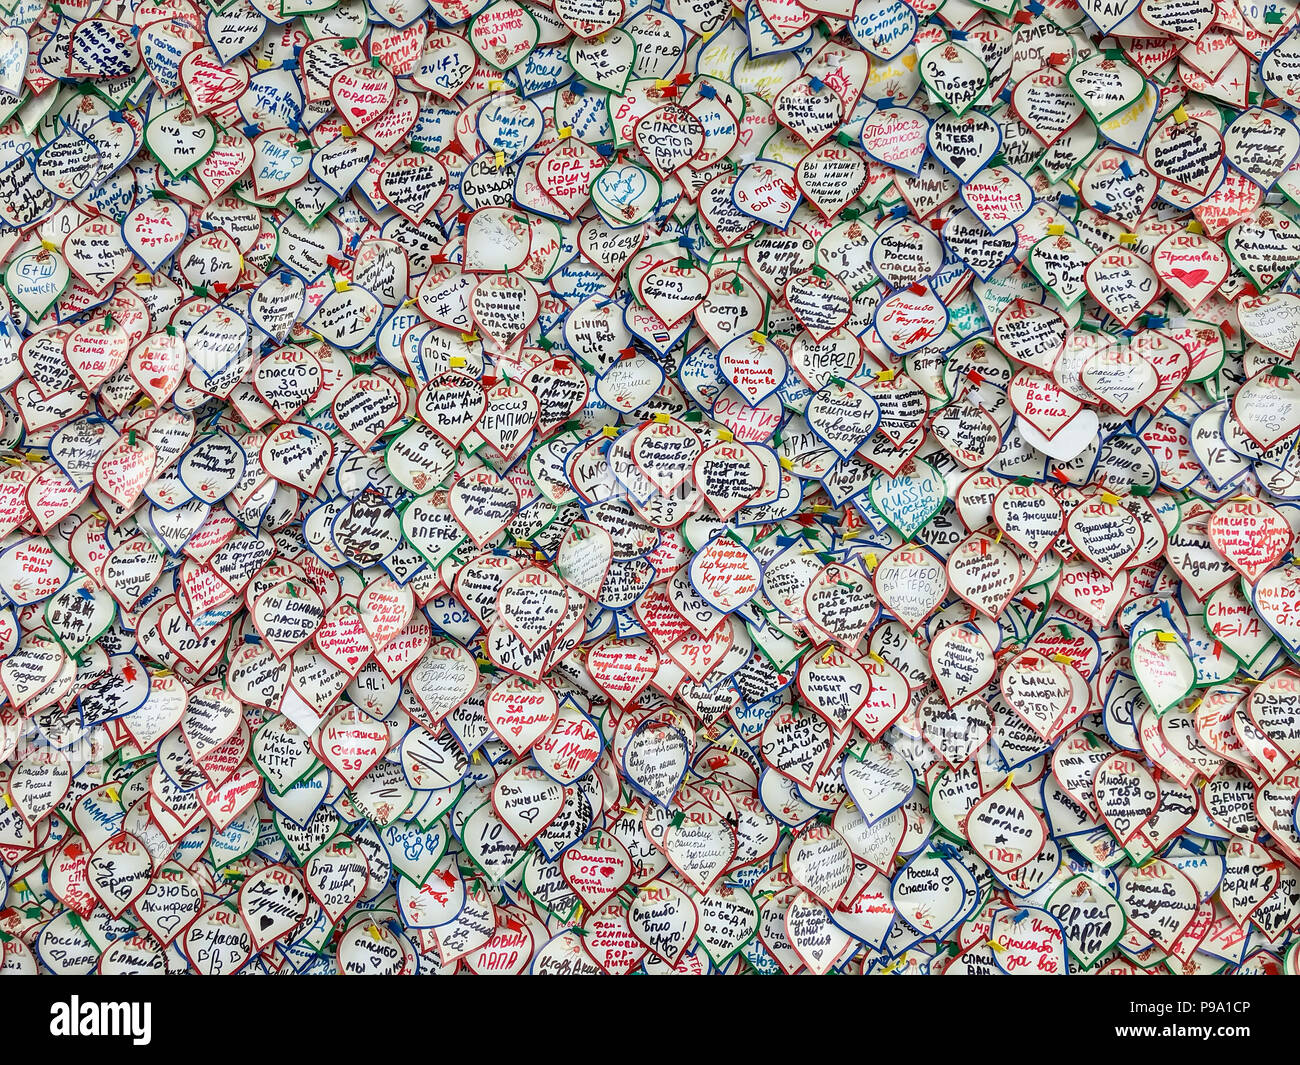 MOSCOW, RUSSIA - JULY, 10, 2018: FIFA Fan Fest Moscow, stickers wall about feelings, love, sport, forecasts. World Cup FIFA 2018, Fan Fest - Stock Image